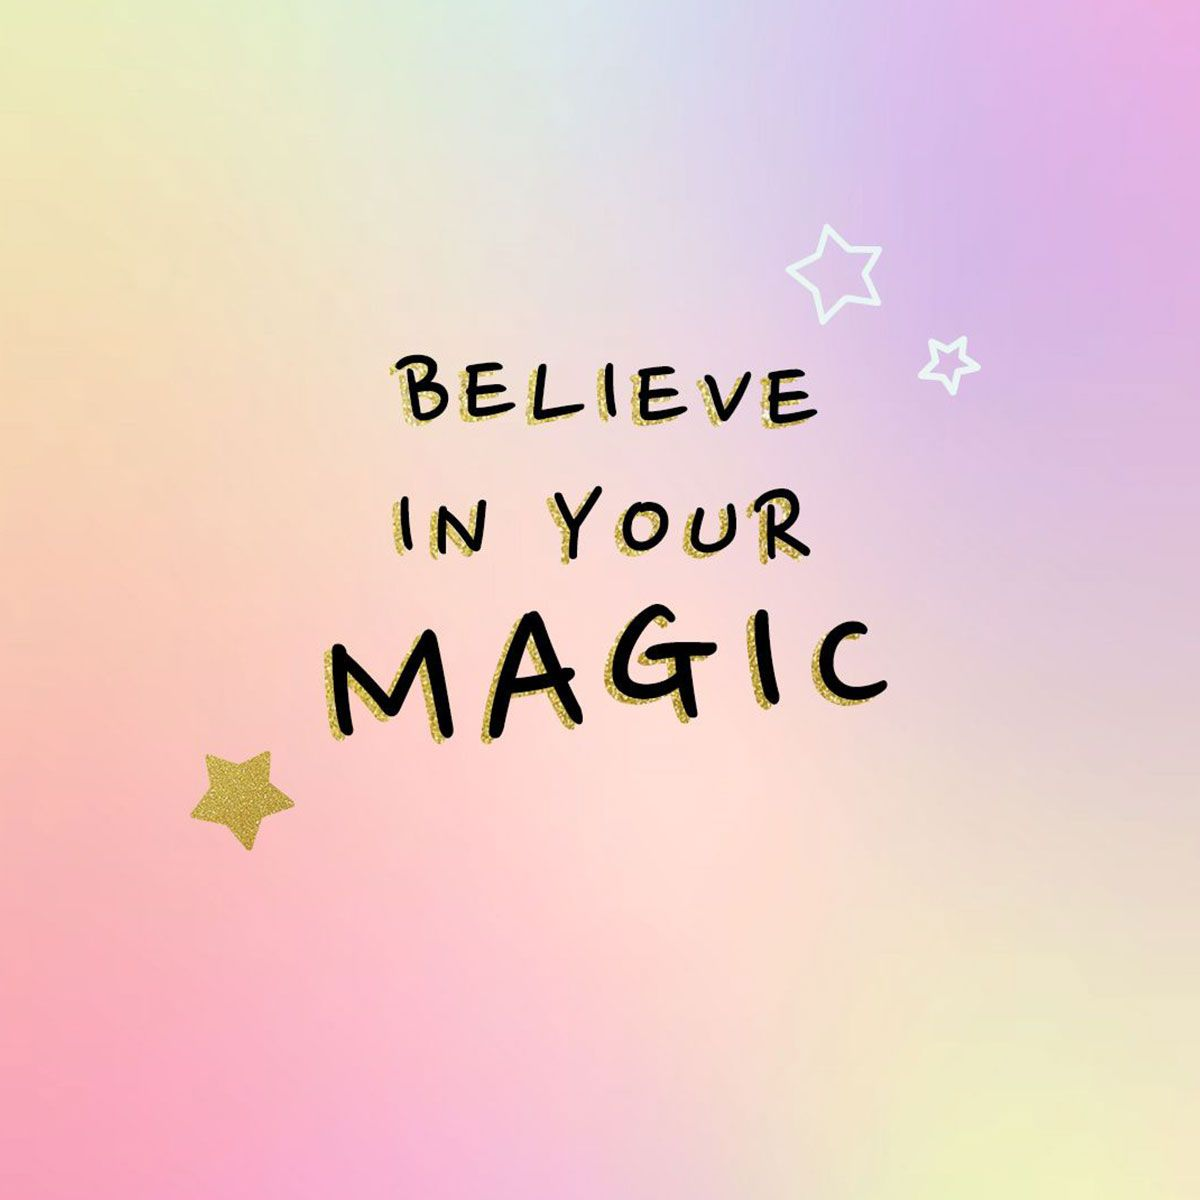 Magic is believing in yourself. If you can do that. You can make anything happen. 🌟✨ #HappyDay #Magic #Motivation #Opportunity #Qoutes #EnjoyLife #HappyMood #Believe #Happiness #Joy #Wholesaleshopping